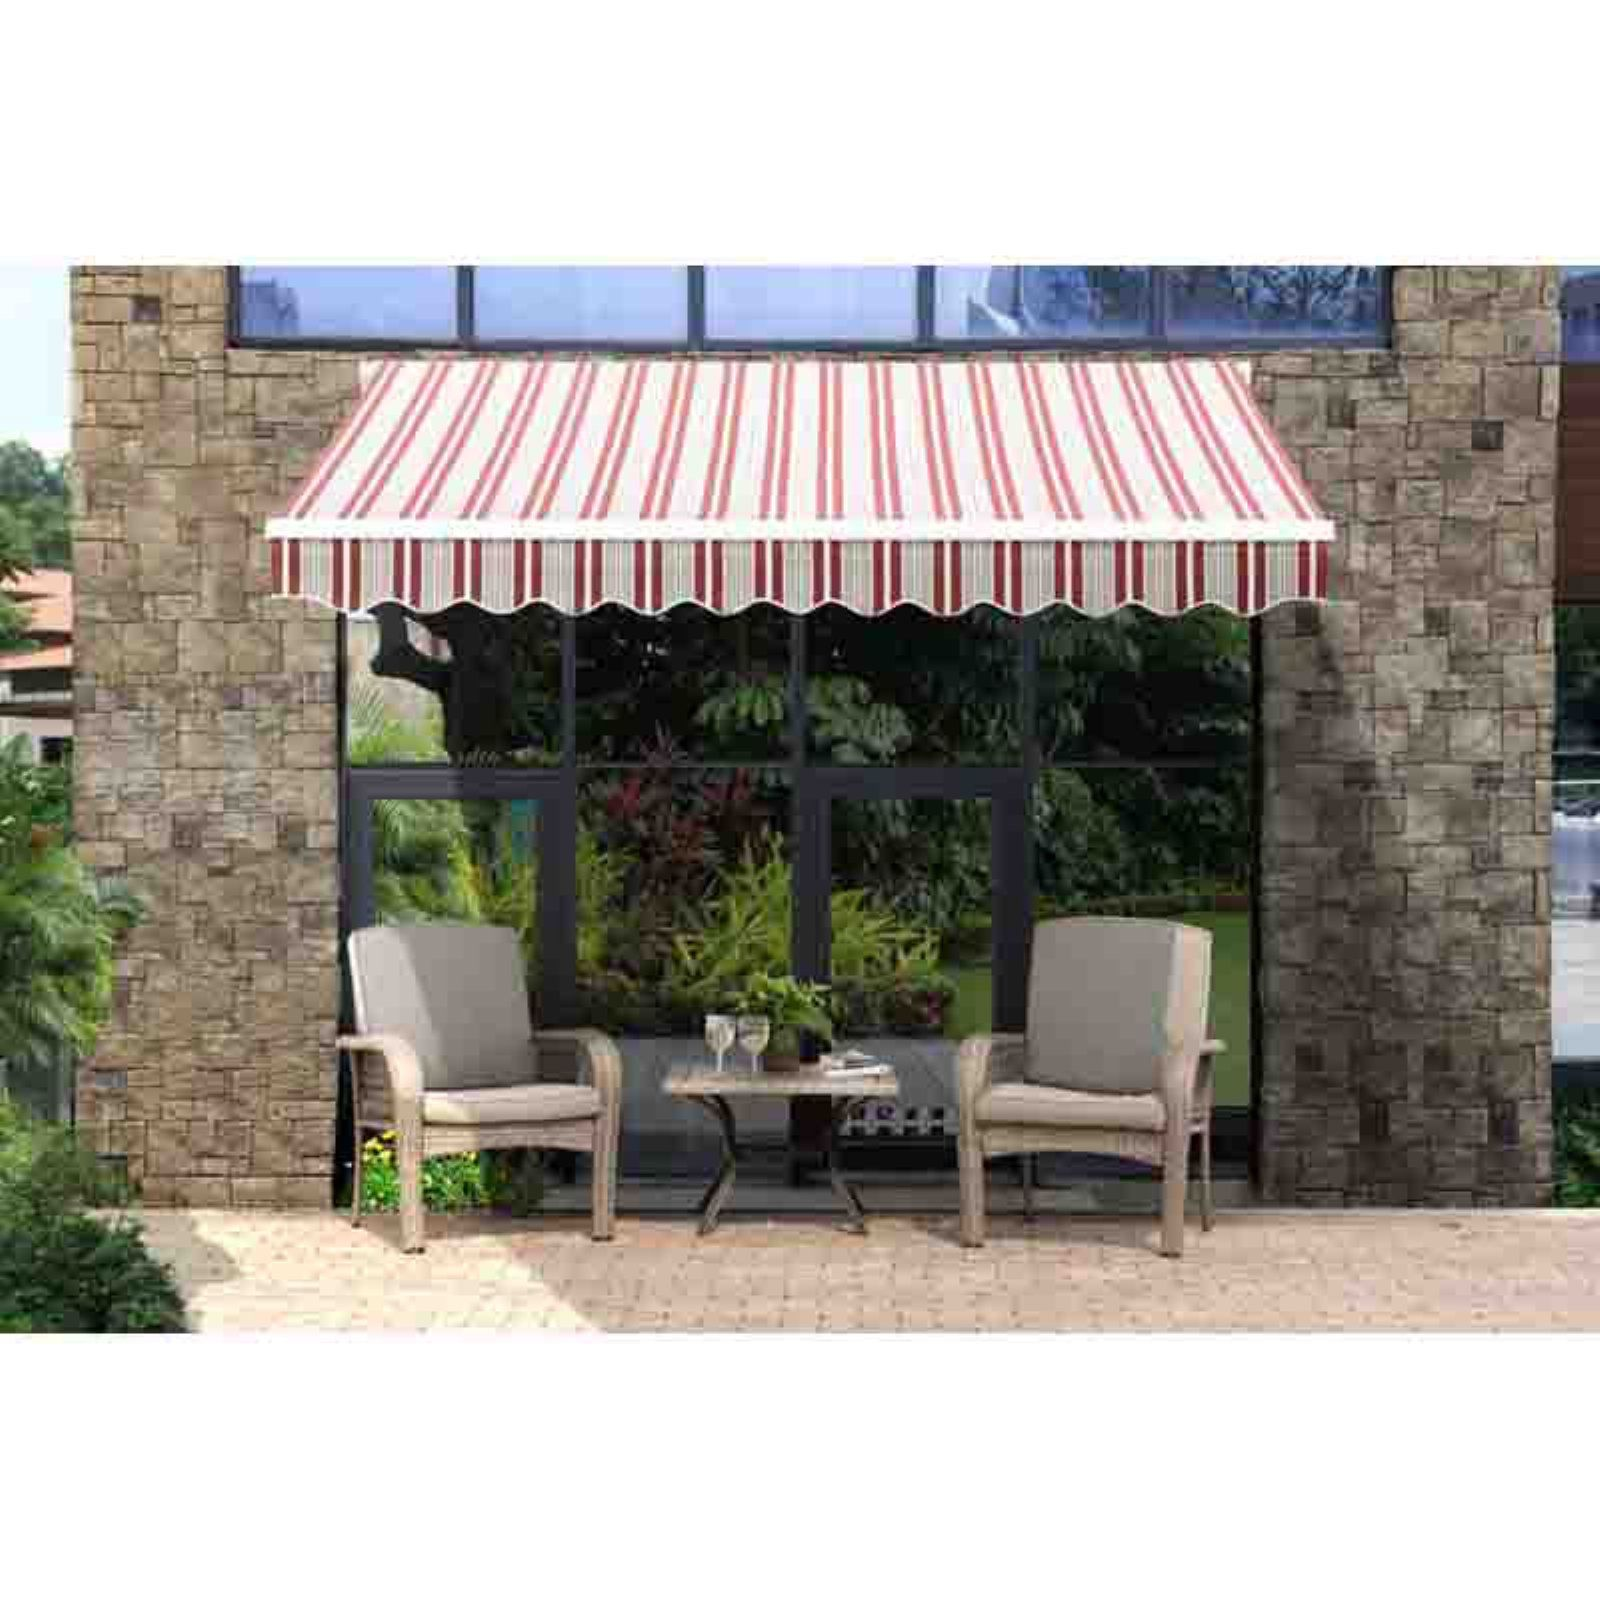 Sunjoy Classic 10 X 9 Ft Retractable Awning Striped Red Pergola Shade Pergola Pergola With Roof